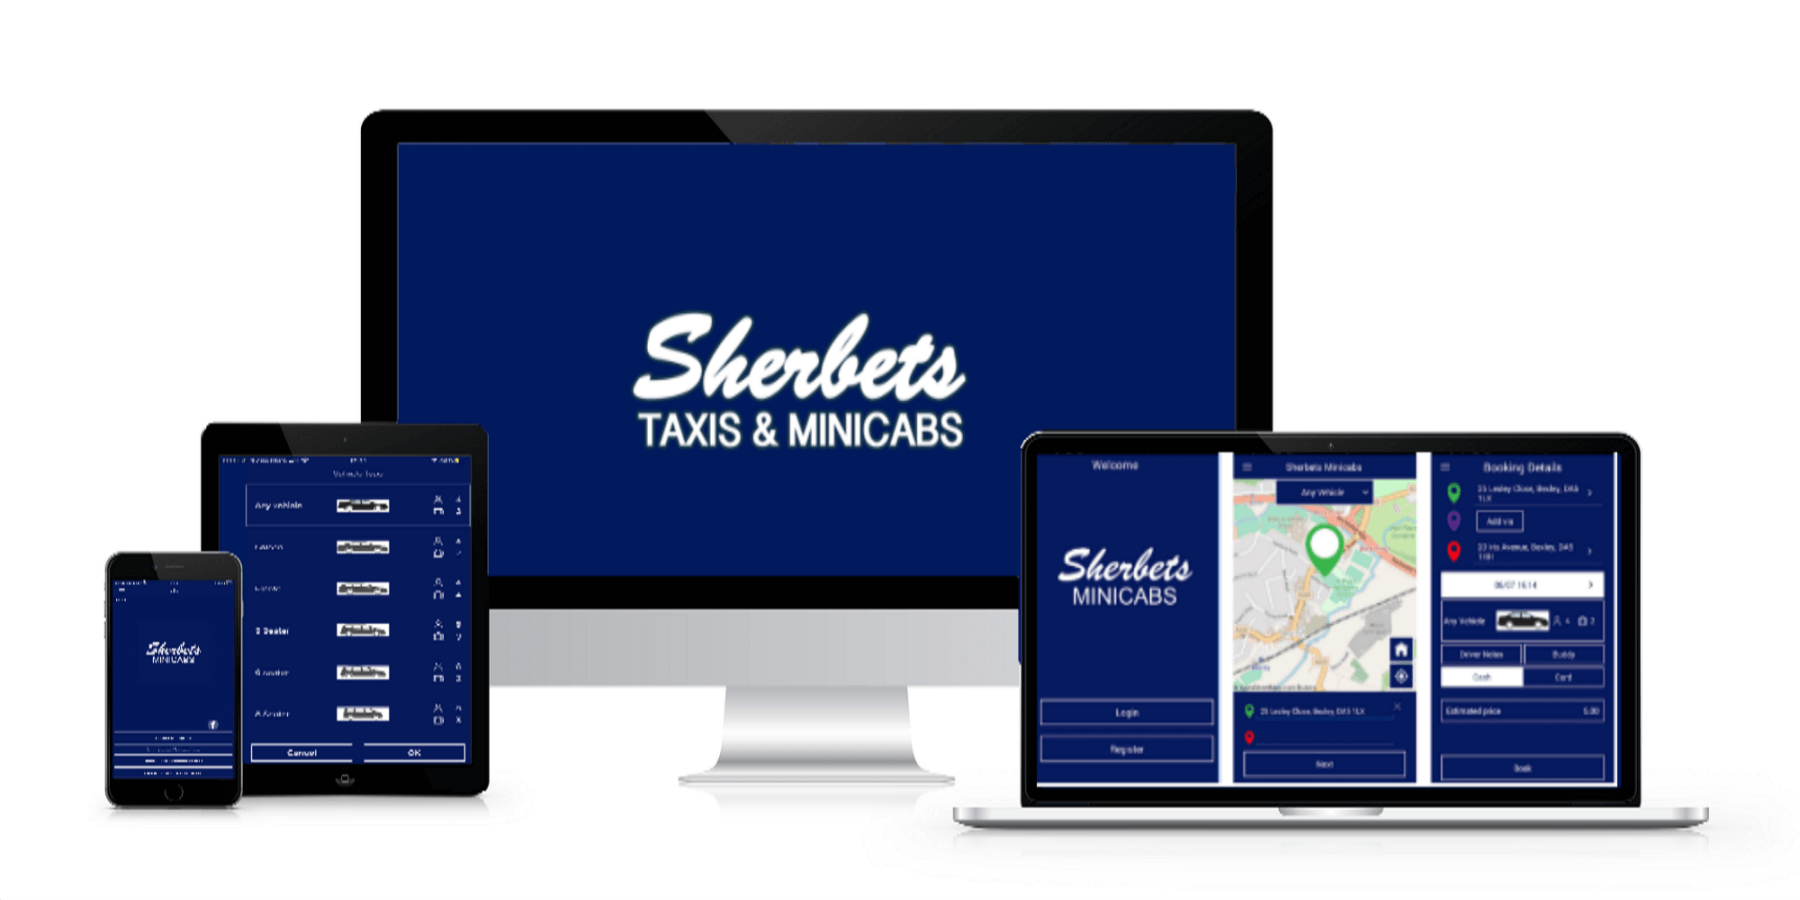 Download Our Taxi App - Sherbets Mini Cabs Near Me